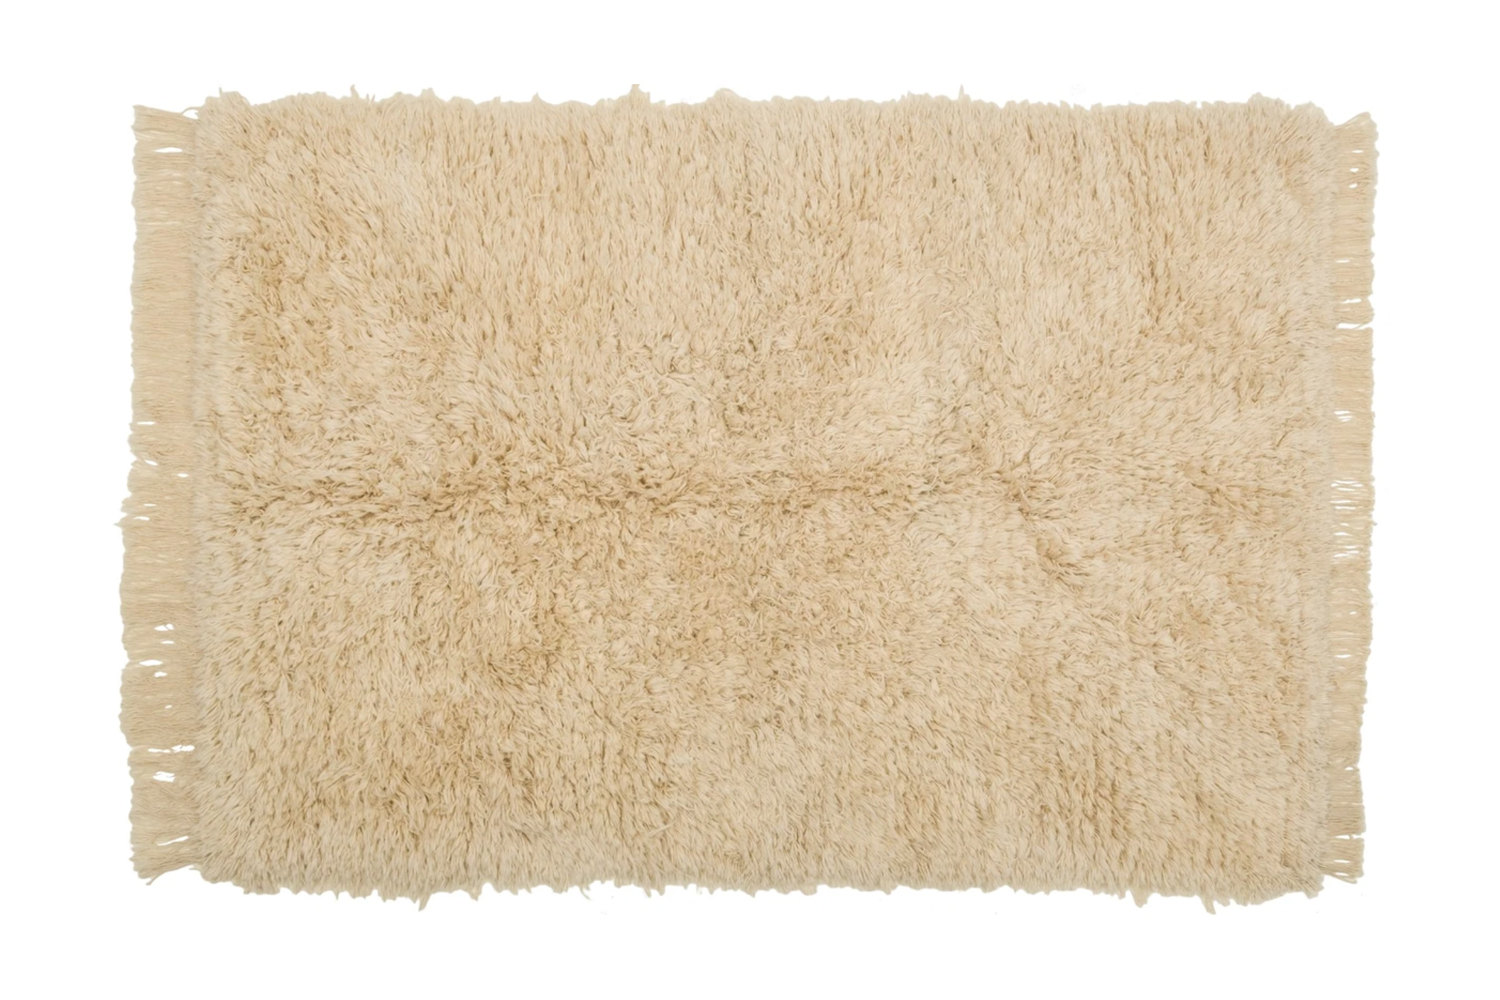 The Zlatinka Handknotted Rug is $loading=